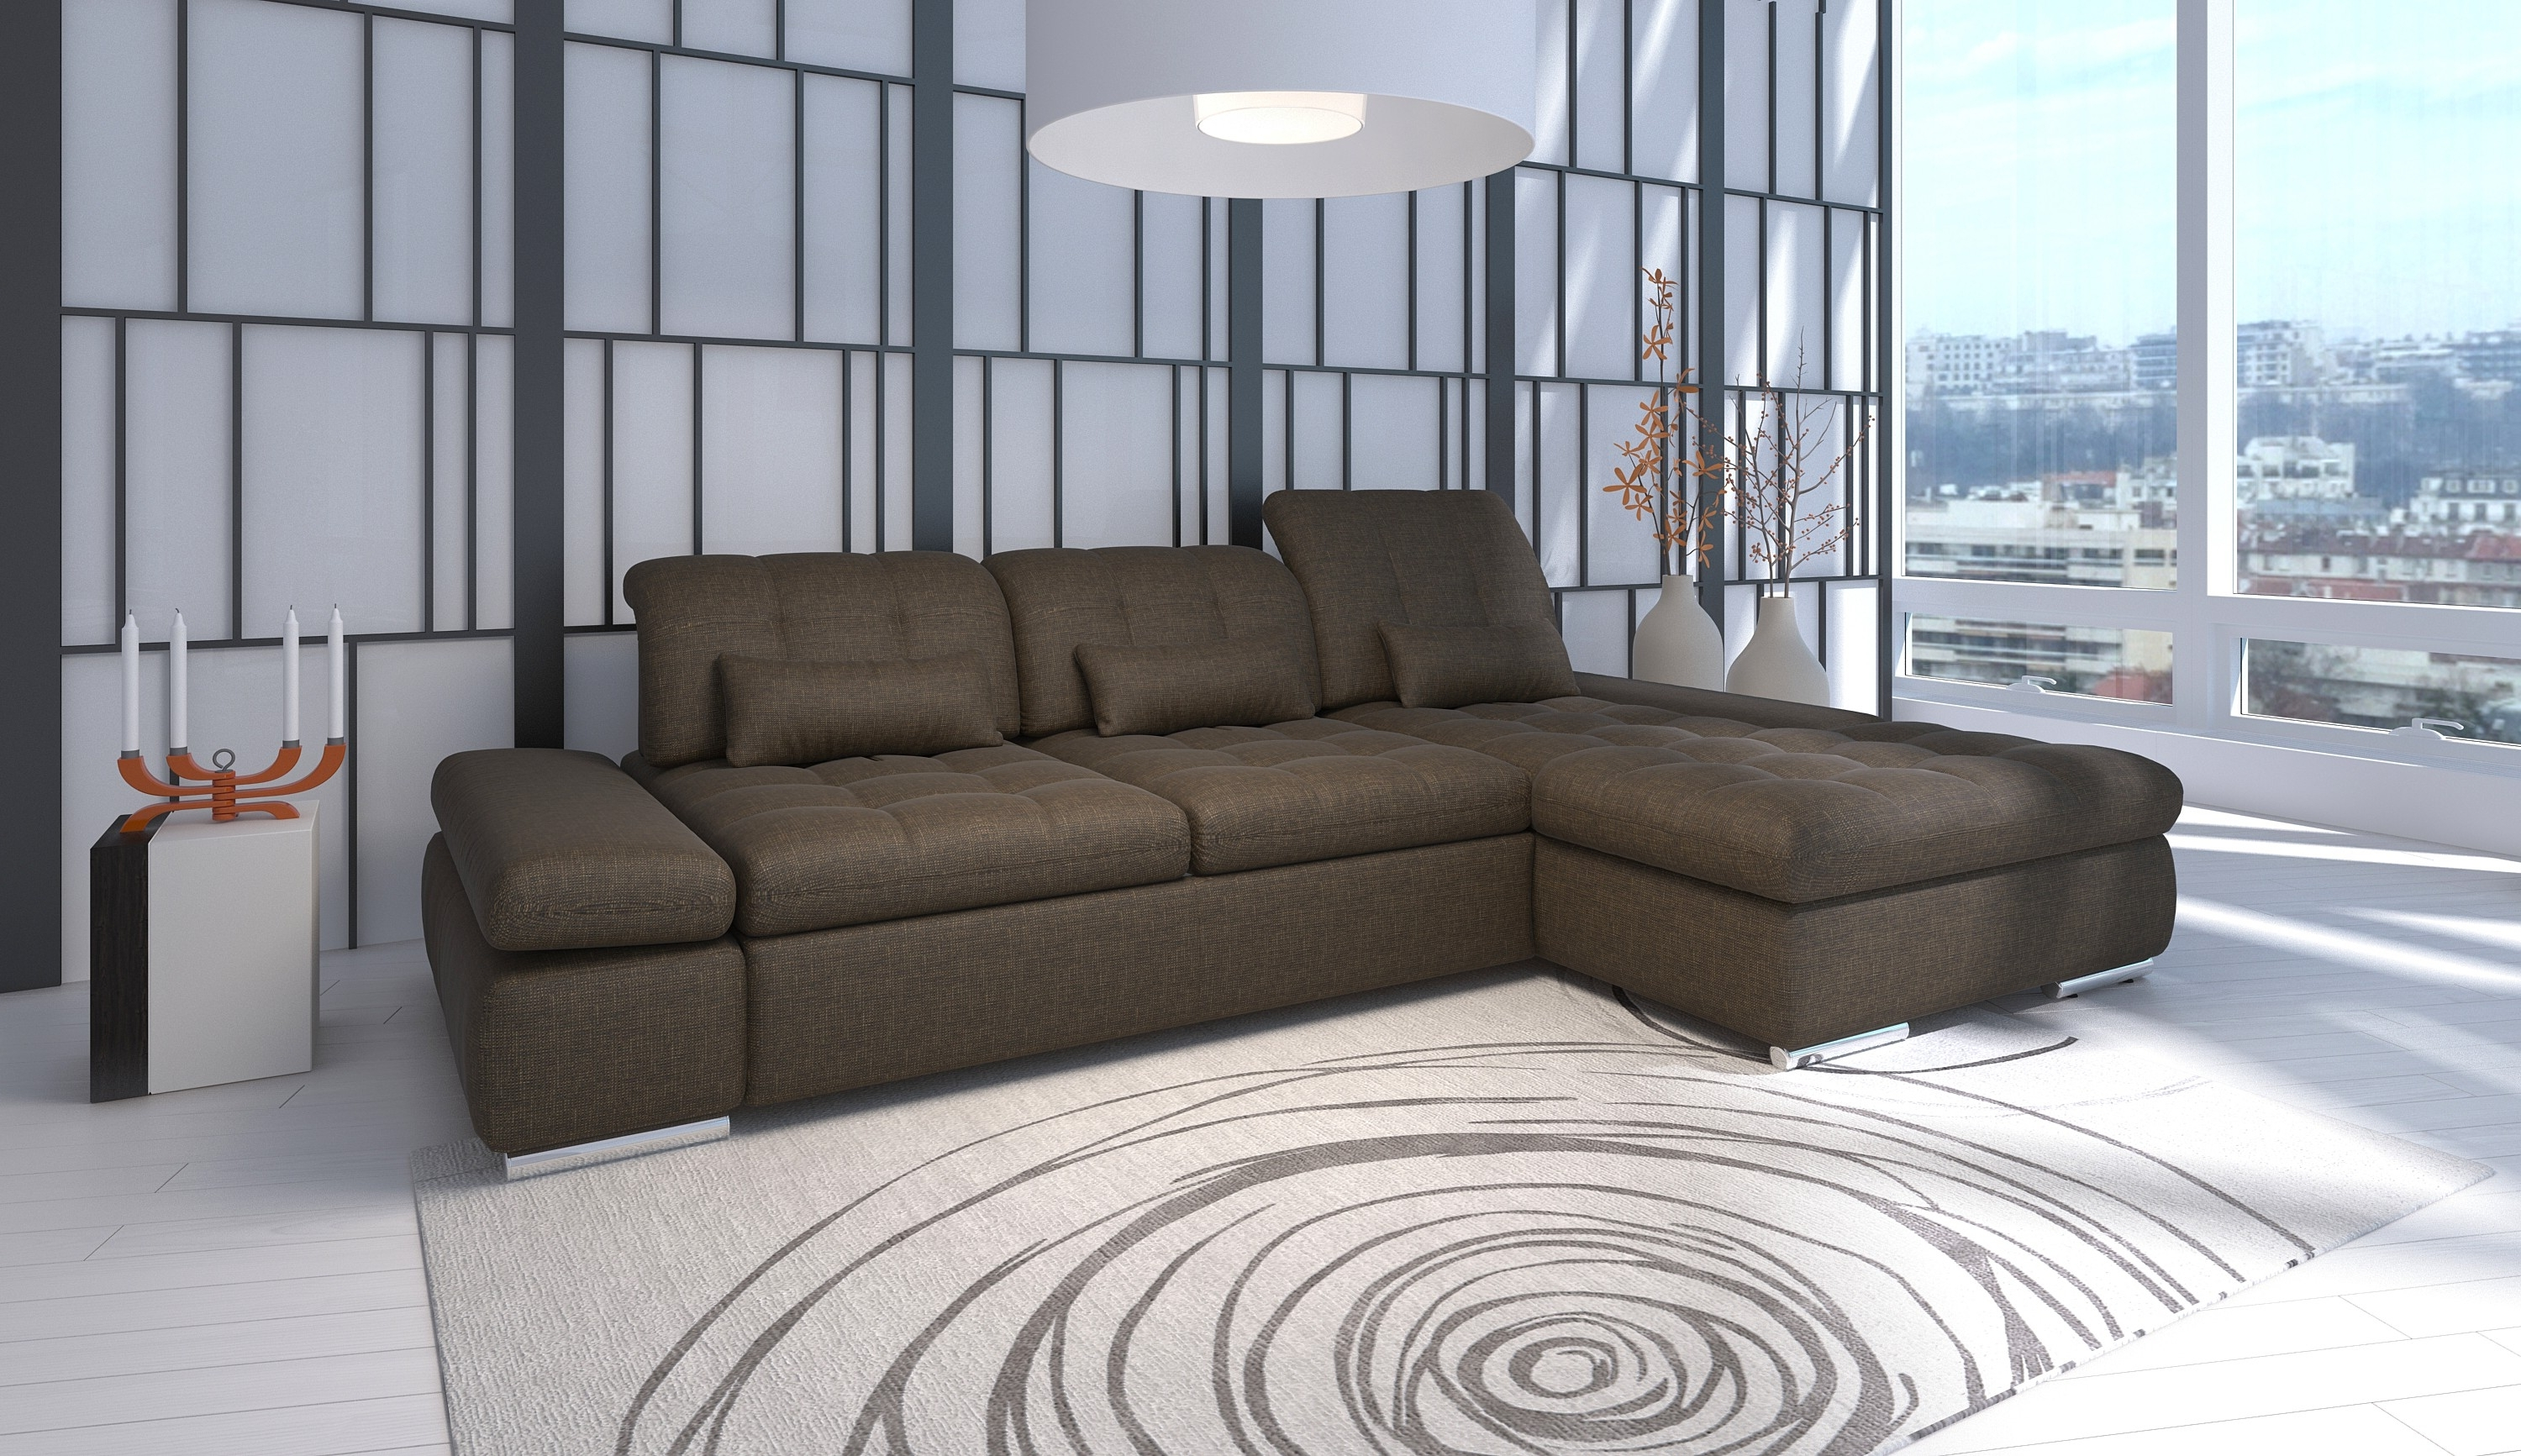 Most Recent Trinidad And Tobago Sectional Sofas In Alpine Sectional Sofa (View 6 of 20)